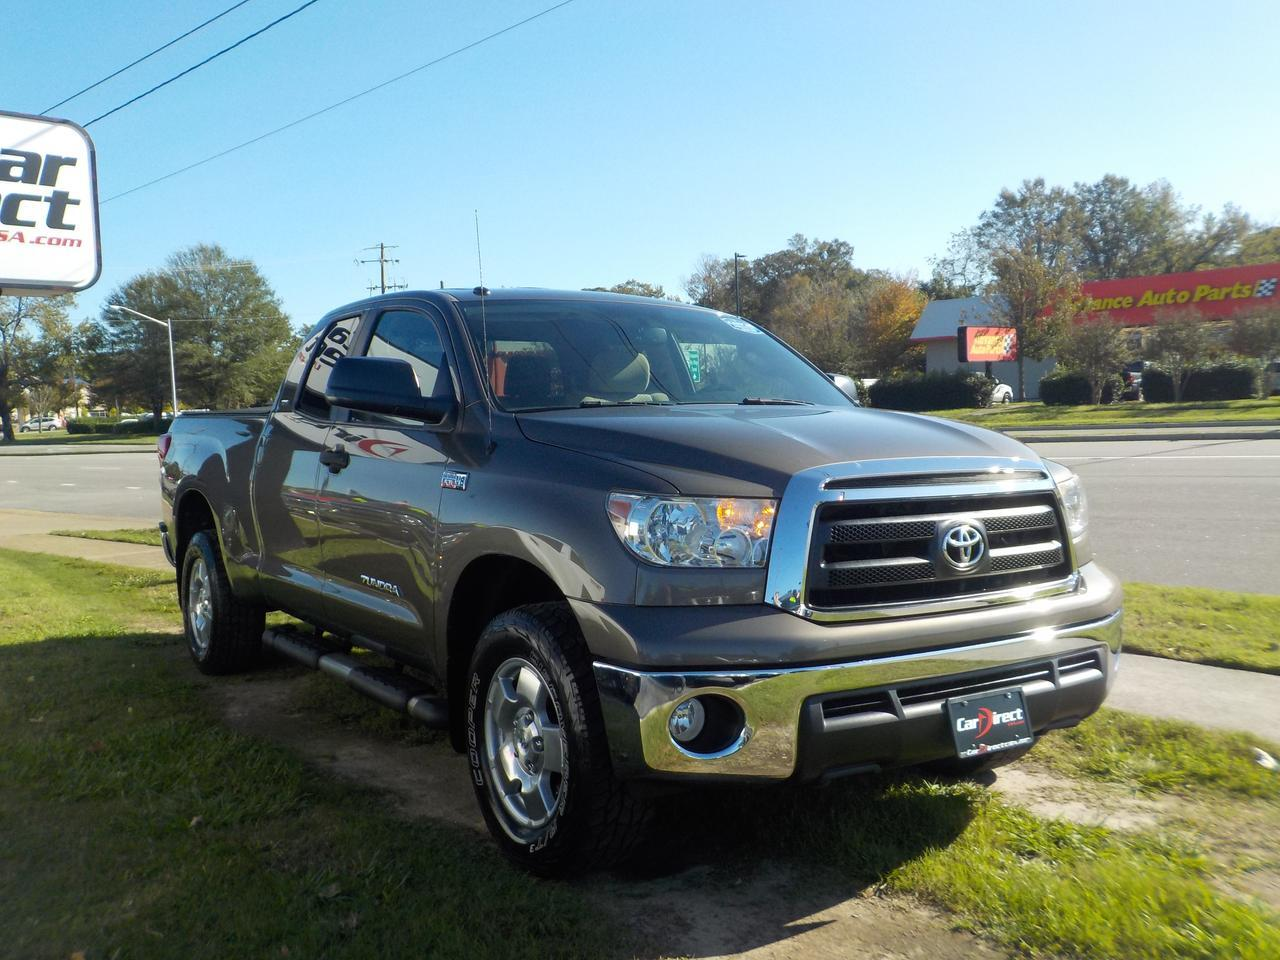 2012 TOYOTA TUNDRA SR5 DOUBLE CAB TRD OFFROAD 4X4, ONE OWNER, EXCELLENT CONDITION, TOW PKG, BACKUP CAM, ONLY 42K MILES! Virginia Beach VA